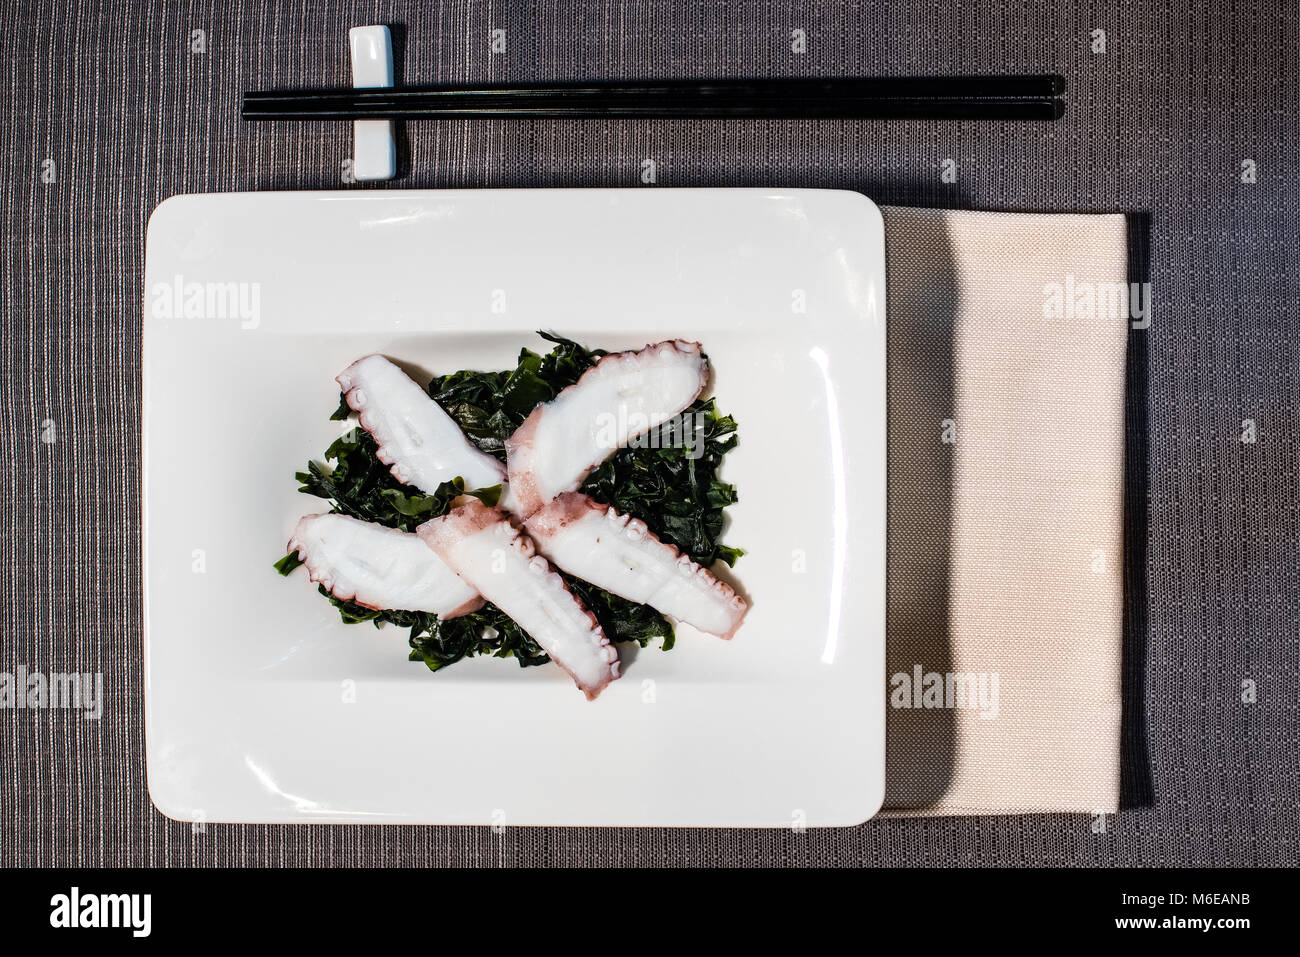 octopus fillets on bed of seaweeds seasoned with rice vinegar, served on a rectangular white plate with black chopsticks - Stock Image